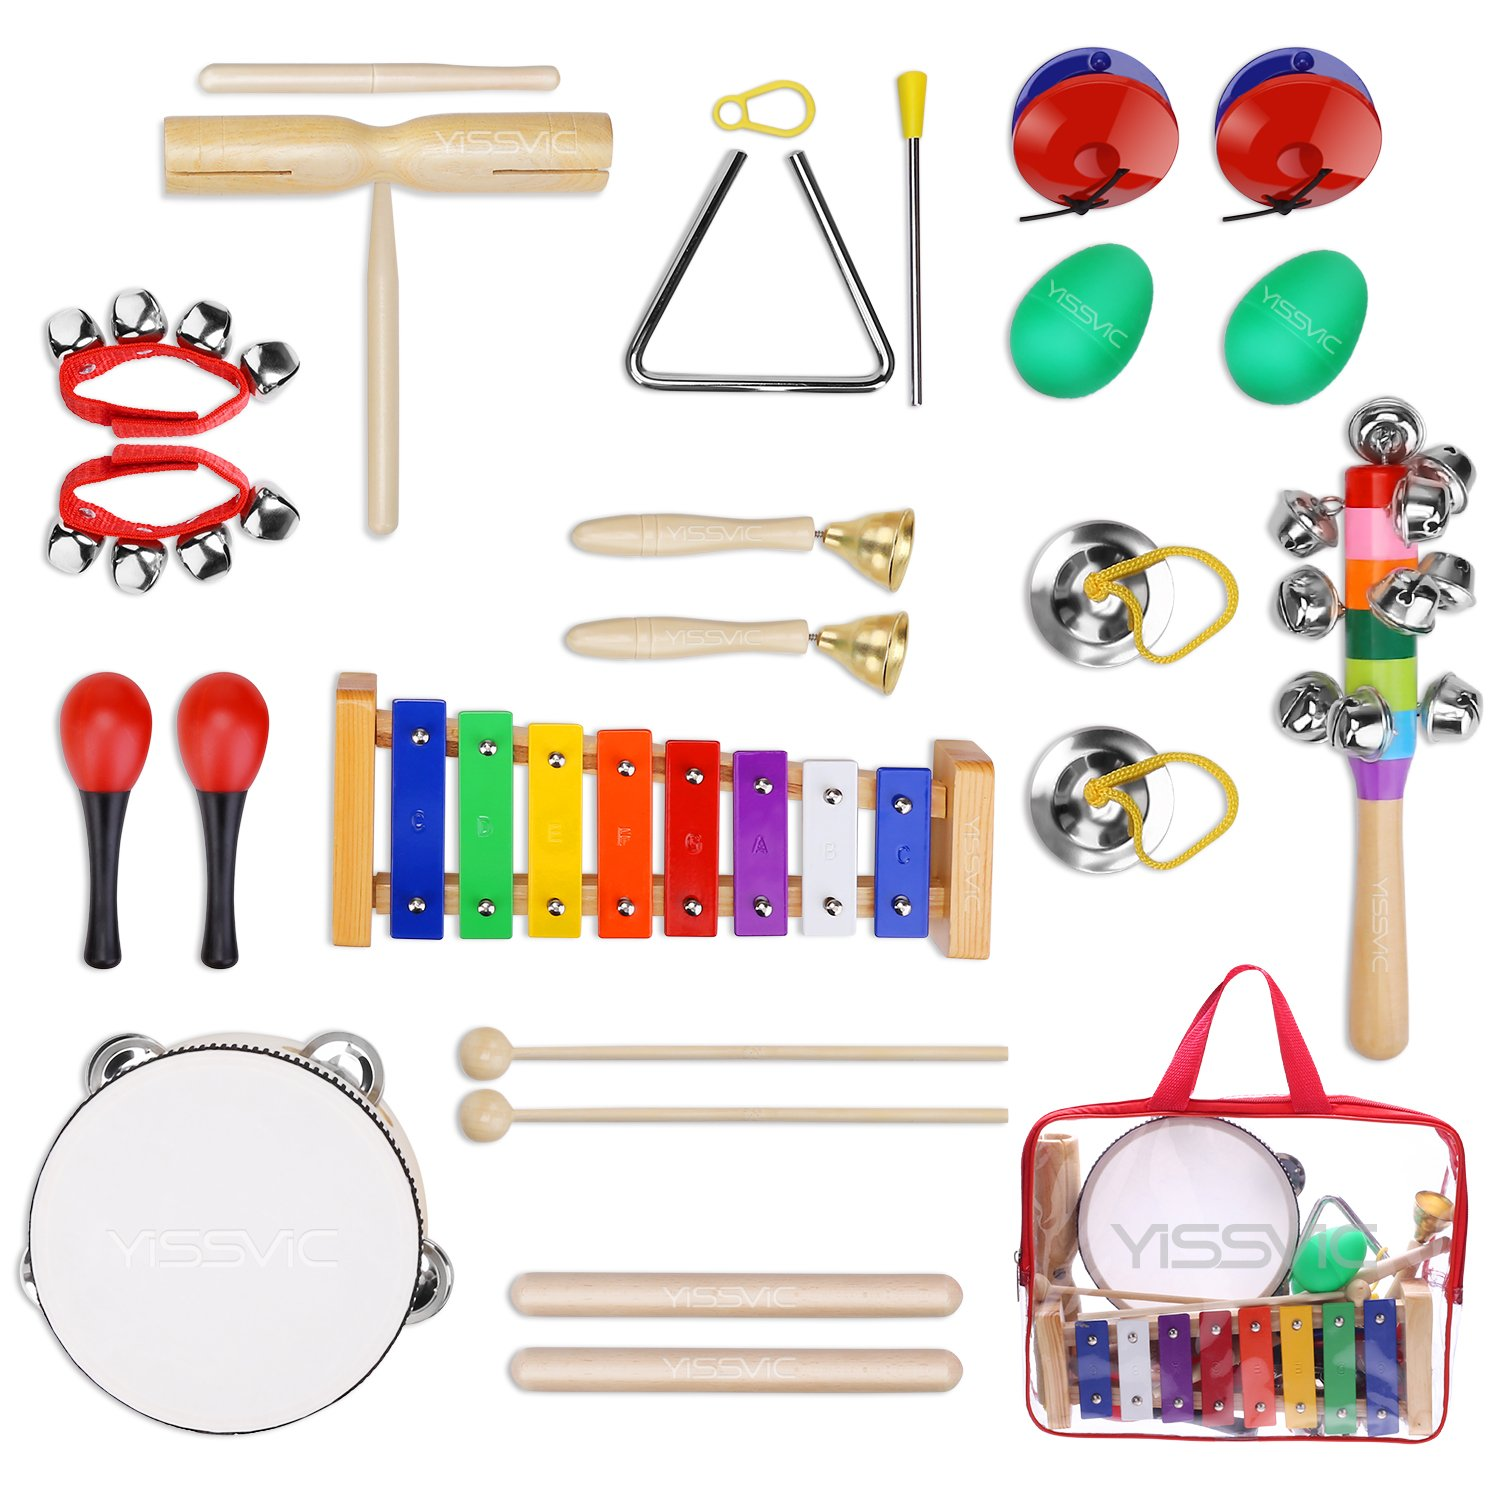 Amazon YISSVIC 12Pcs Kids Musical Instruments Xylophone Set